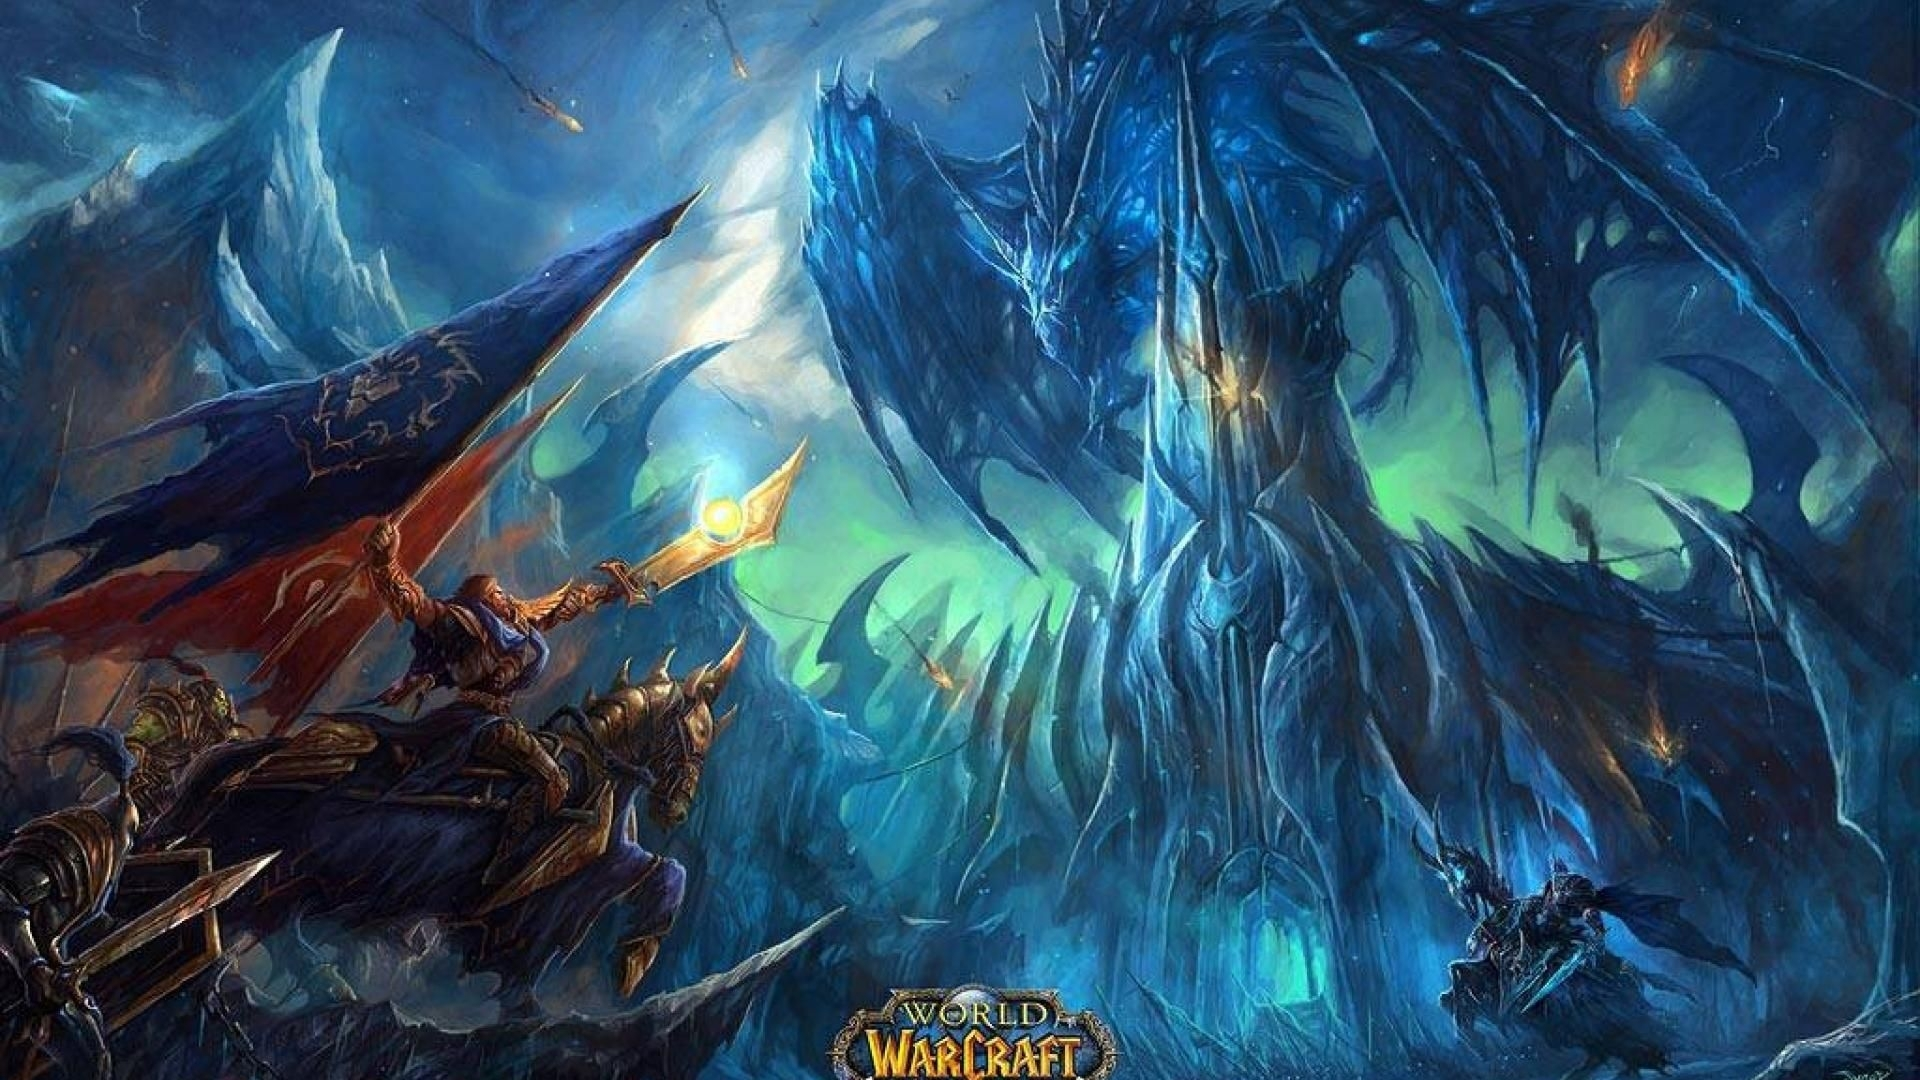 best game world of warcraft wallpaper hd 2 high resolution wallpaper